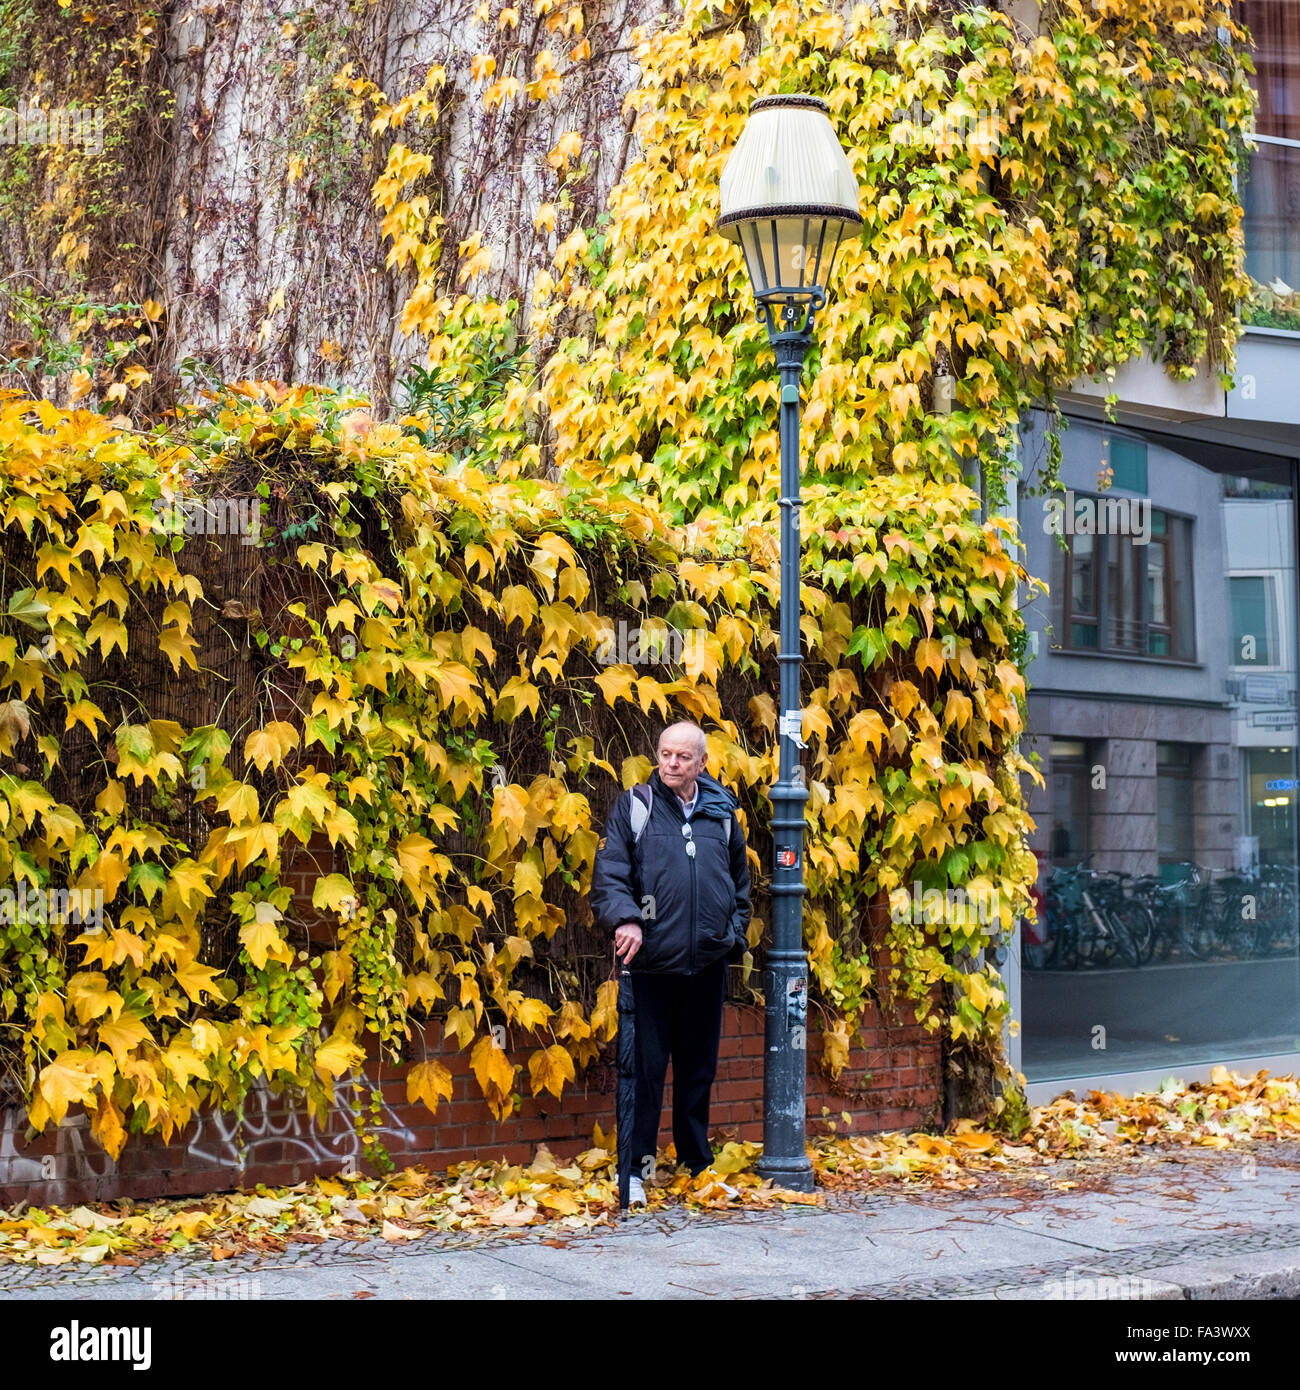 Elderly man with umbrella stands under street light with lampshade in Autumn in Berlin Stock Photo